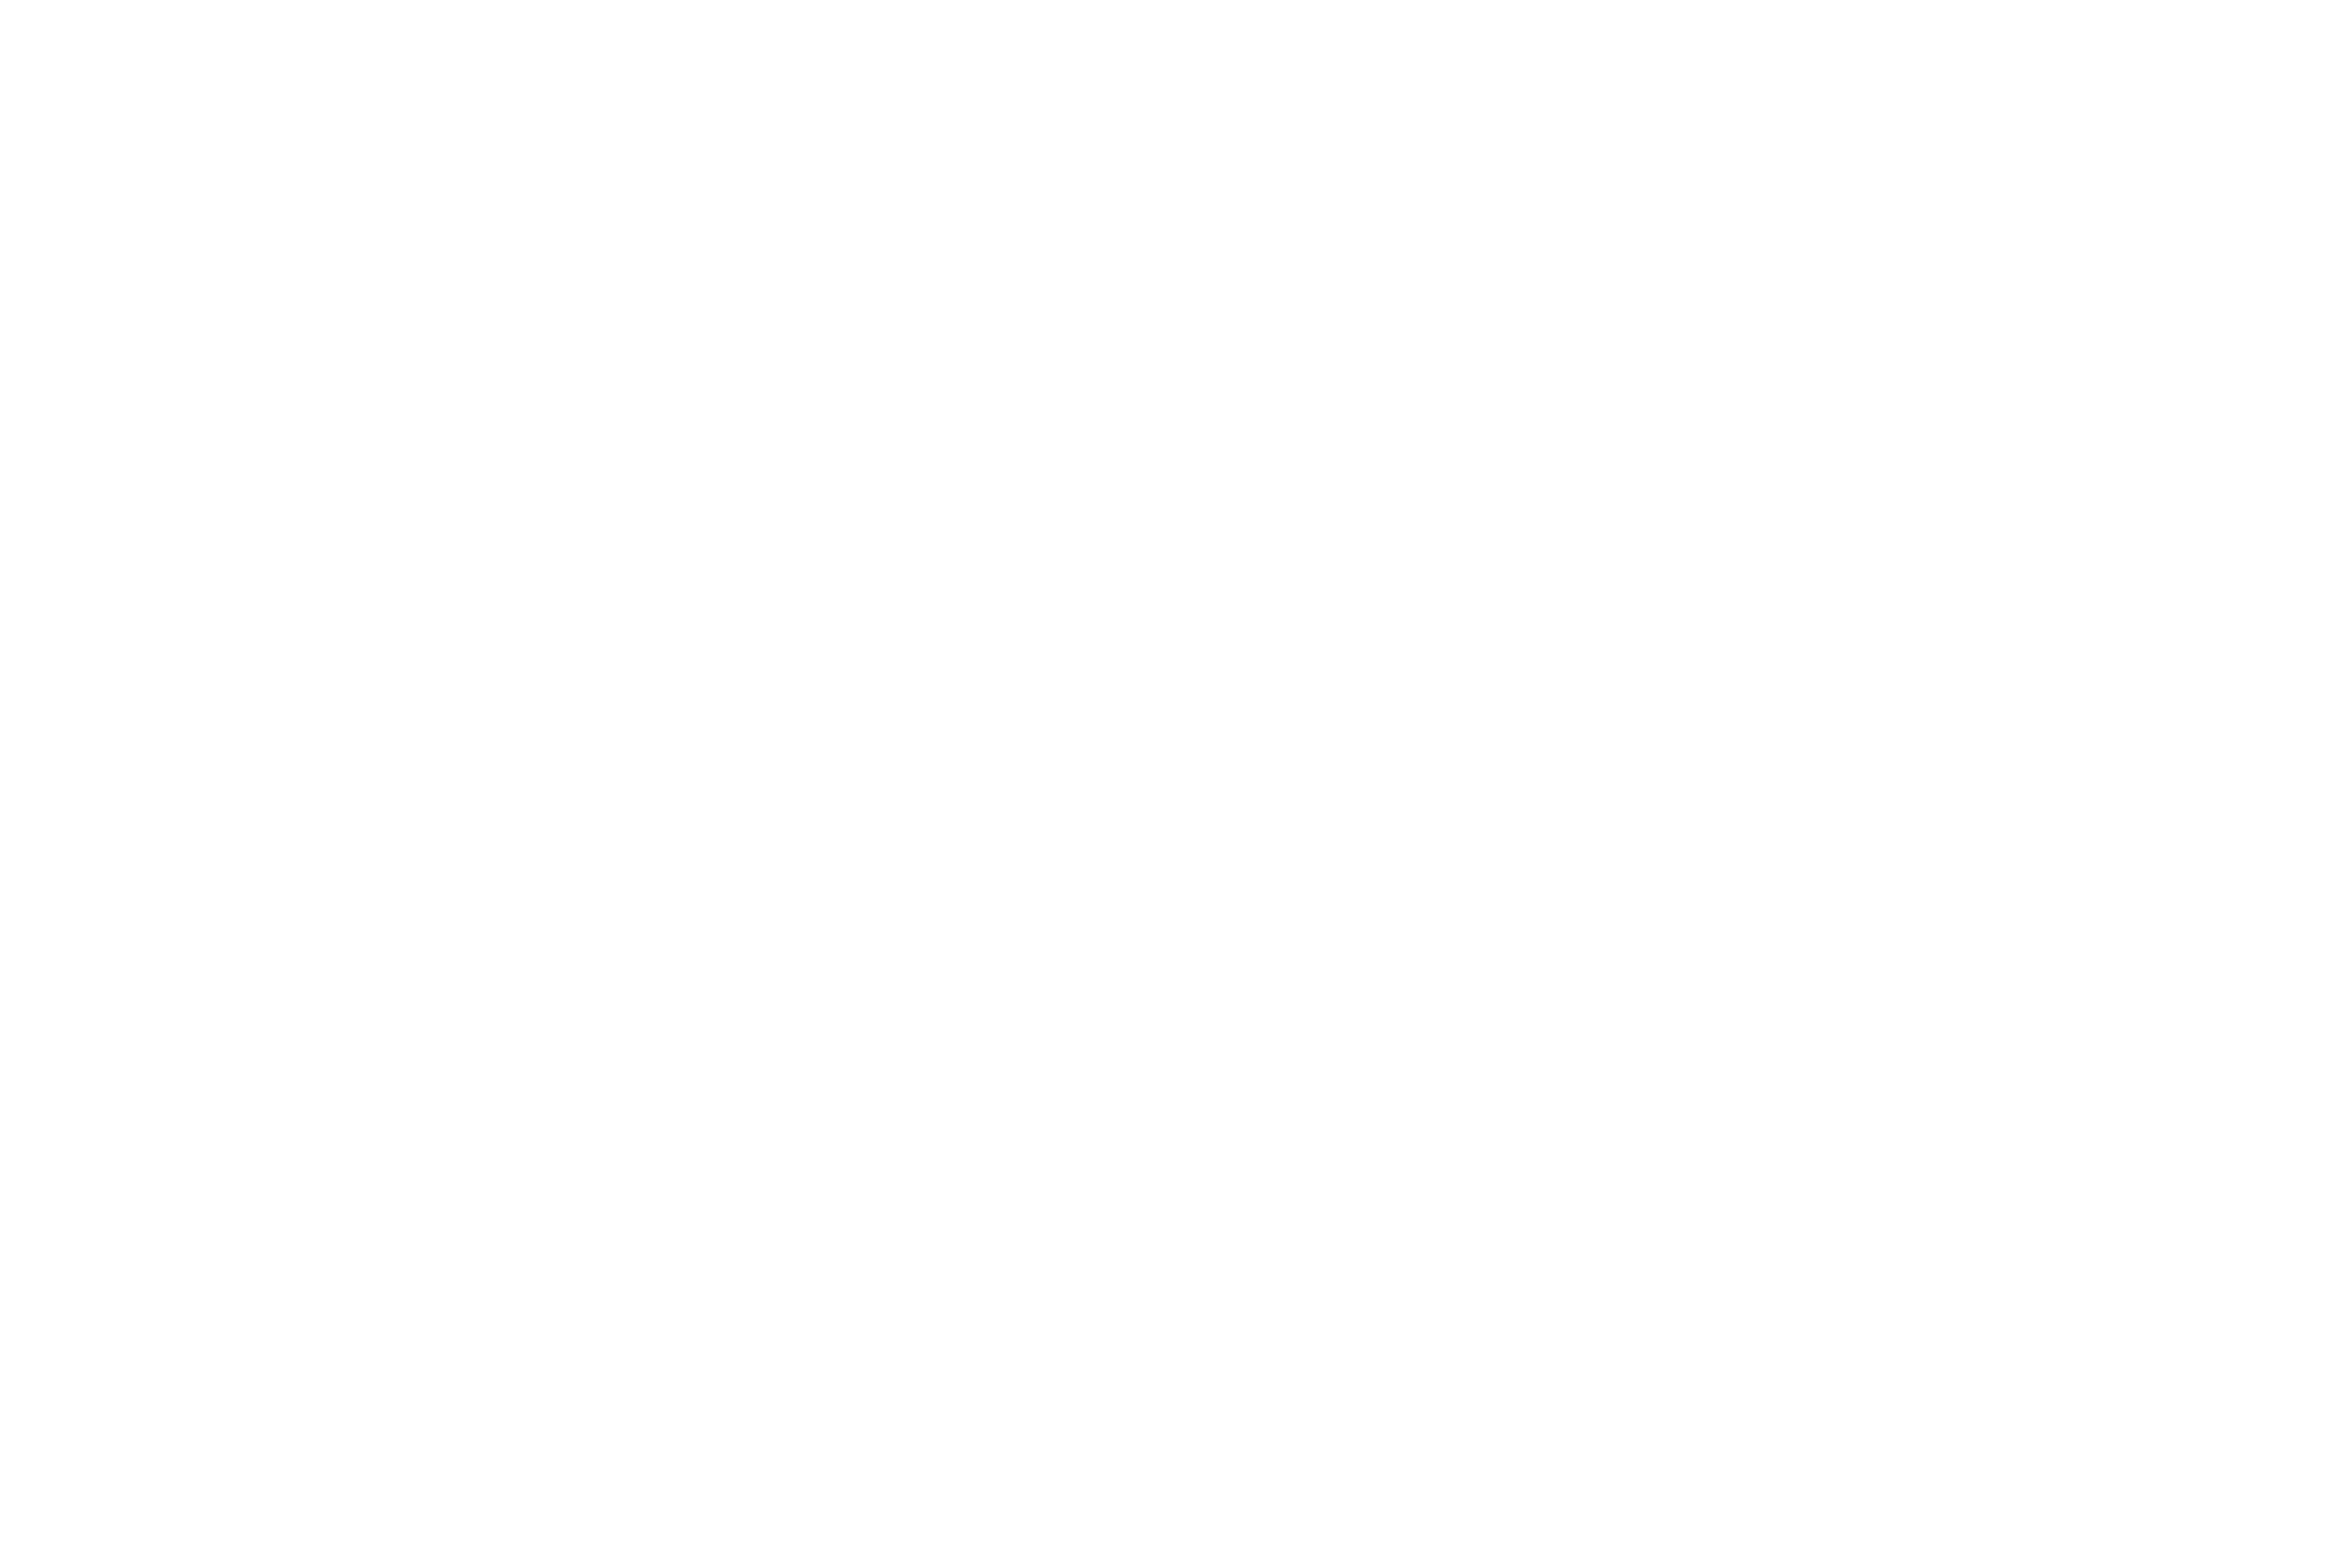 Robert Shipman Photography